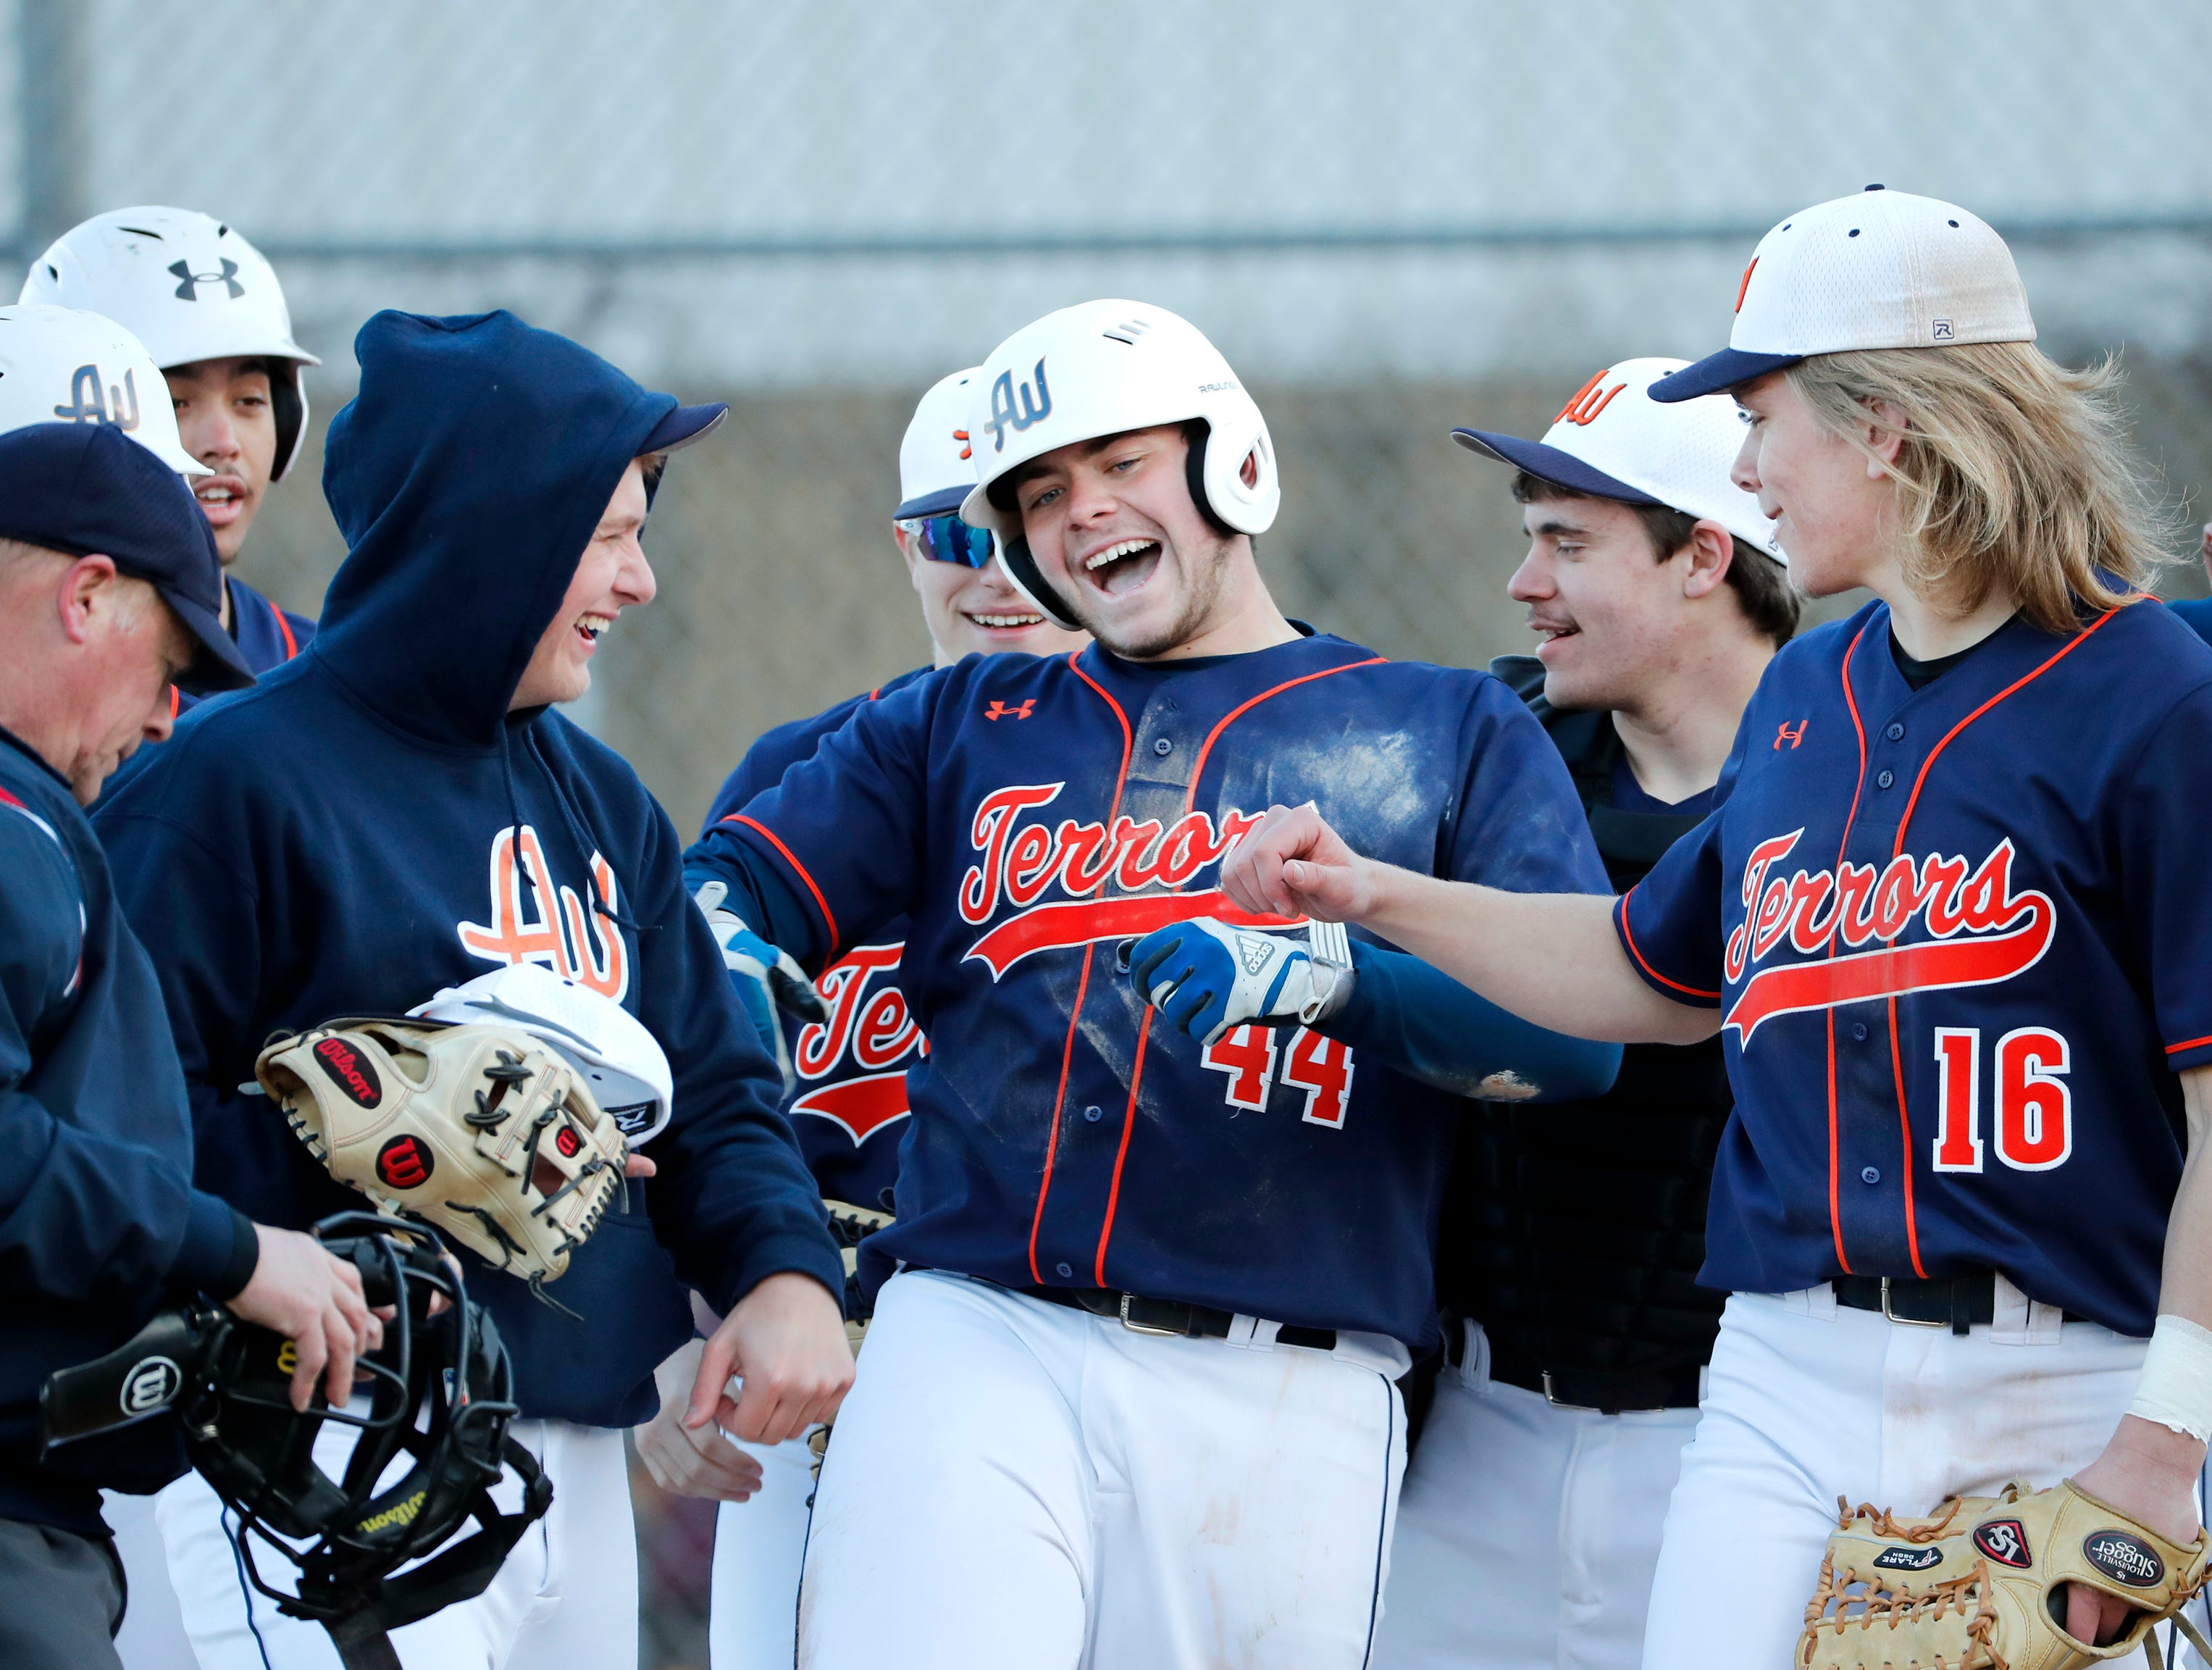 Appleton West's Tyler Tetzke celebrates after hitting a home run against Oshkosh West Tuesday, April 2, 2019, at Nienhaus Field in Appleton, Wis. Appleton West defeated Oshkosh West 9-2.Danny Damiani/USA TODAY NETWORK-Wisconsin